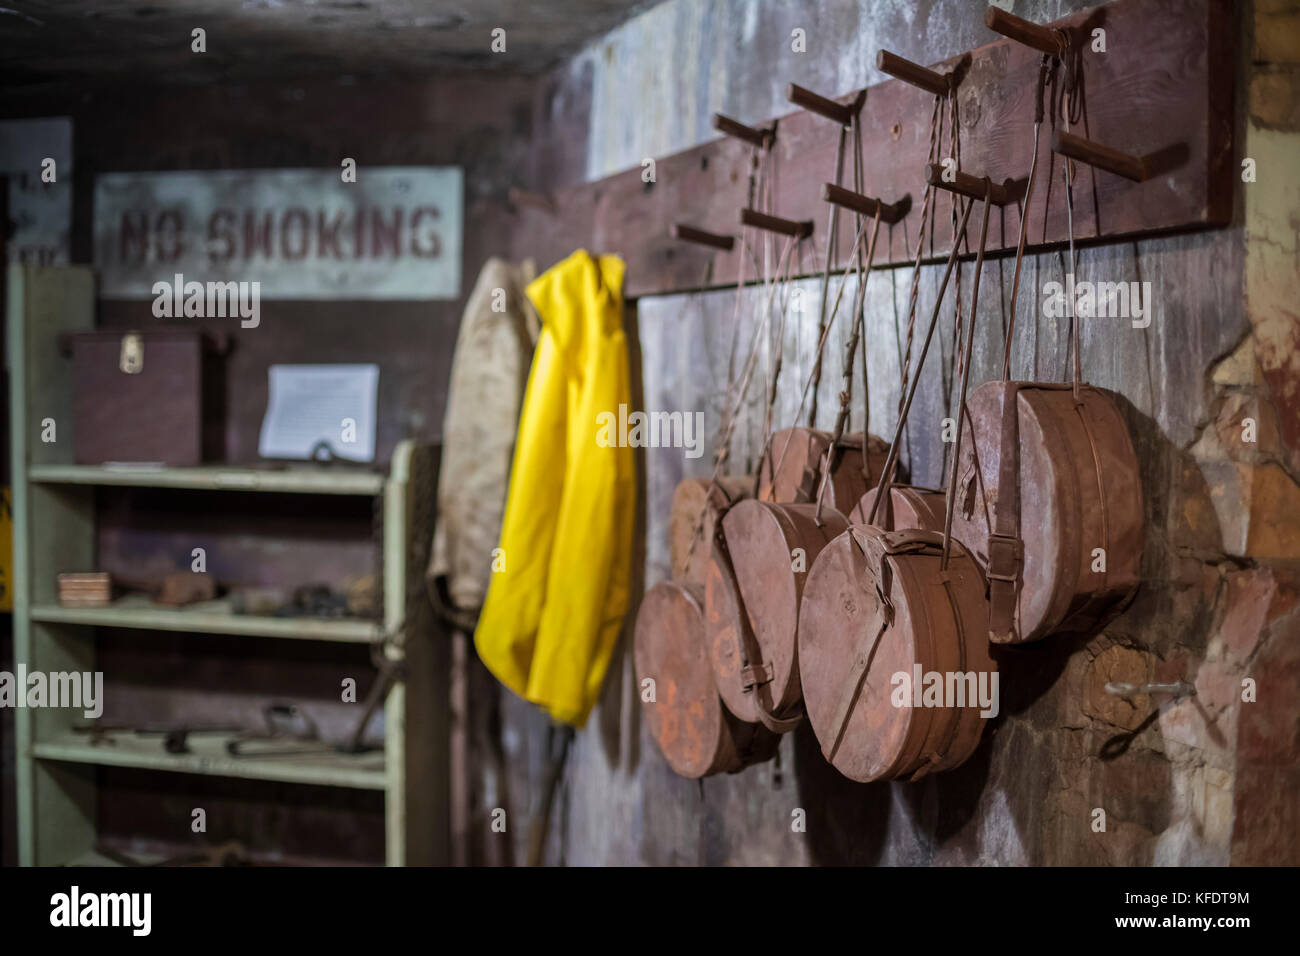 Ishpeming, Michigan - Fuse cans hanging on the wall at the Cliffs Shaft Mining Museum. The museum preserves the - Stock Image